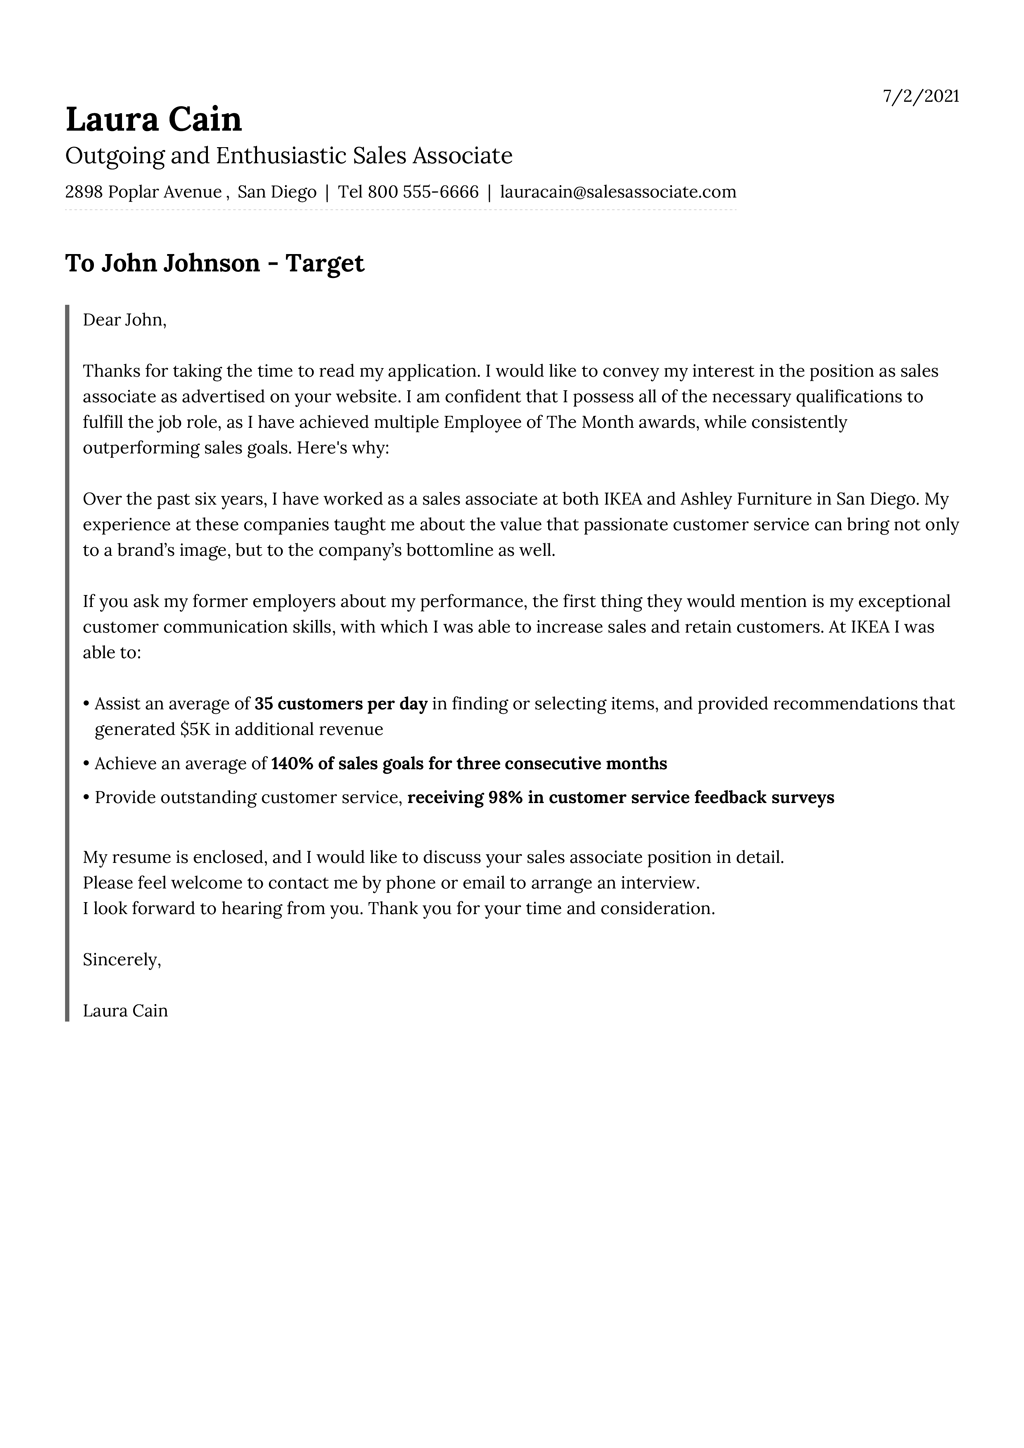 Cover Letter Templates For 2021 Free Download